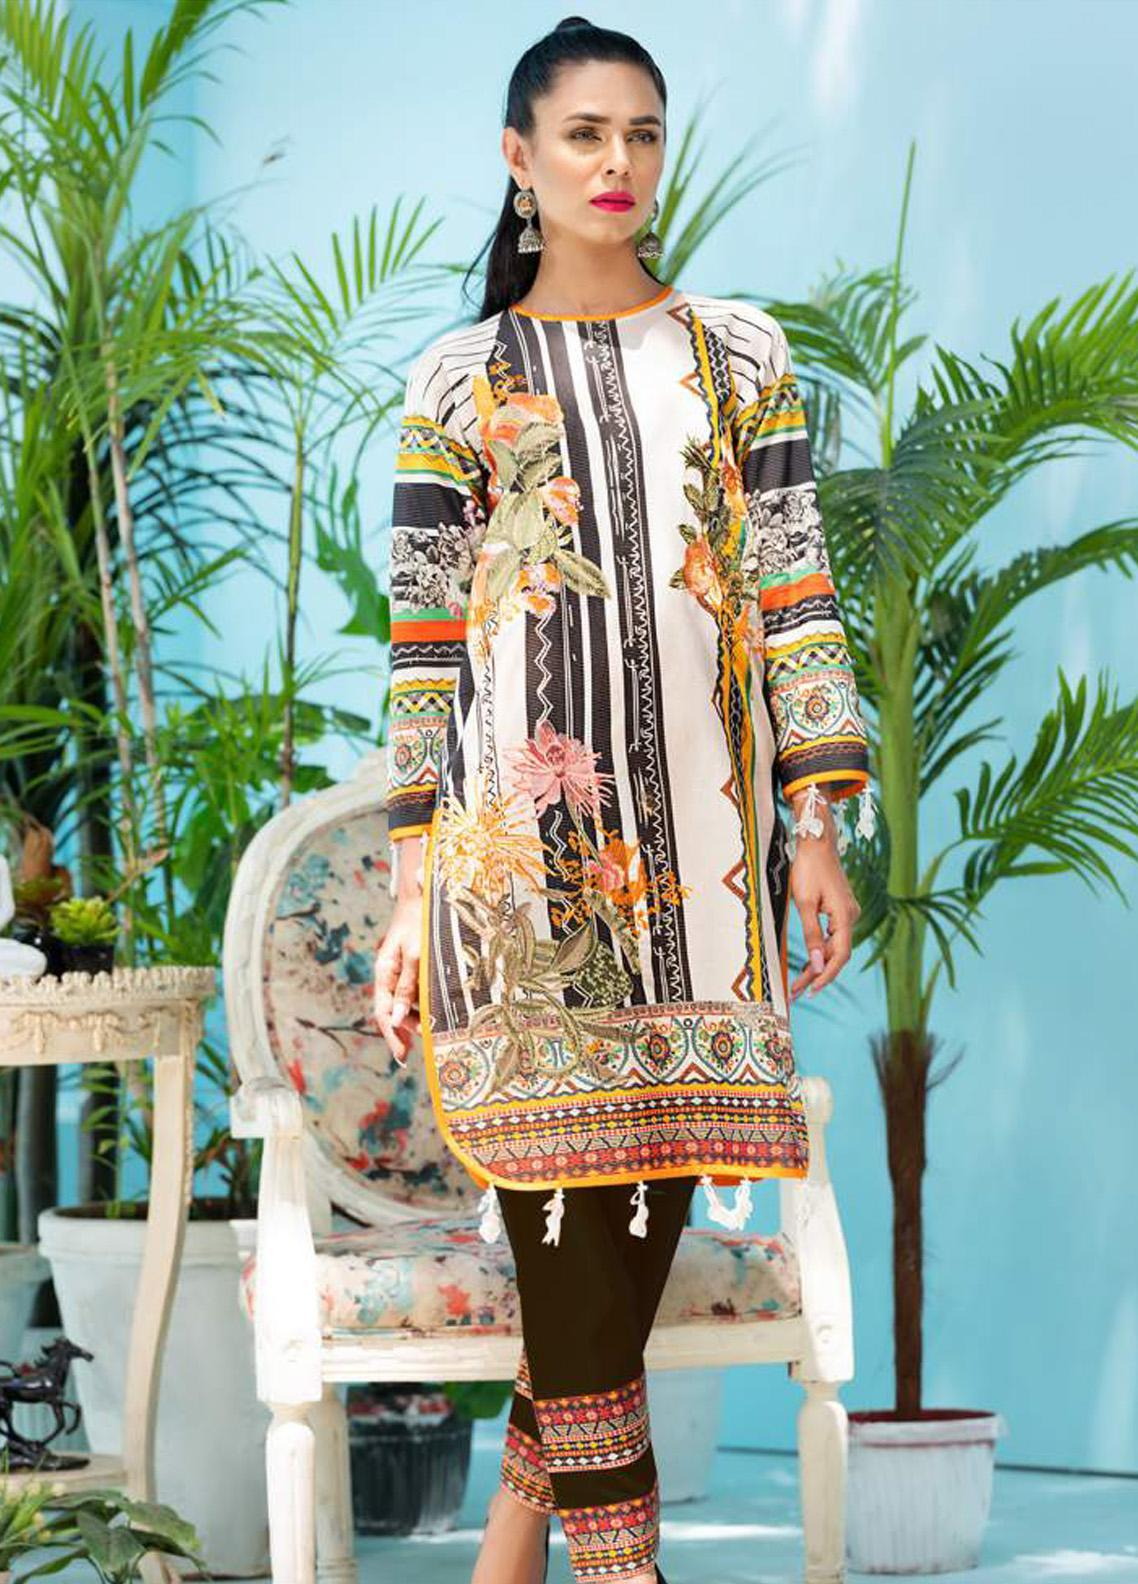 Florence by Rang Rasiya Embroidered Lawn Unstitched 3 Piece Suit RR20SF F540 - Spring / Summer Collection